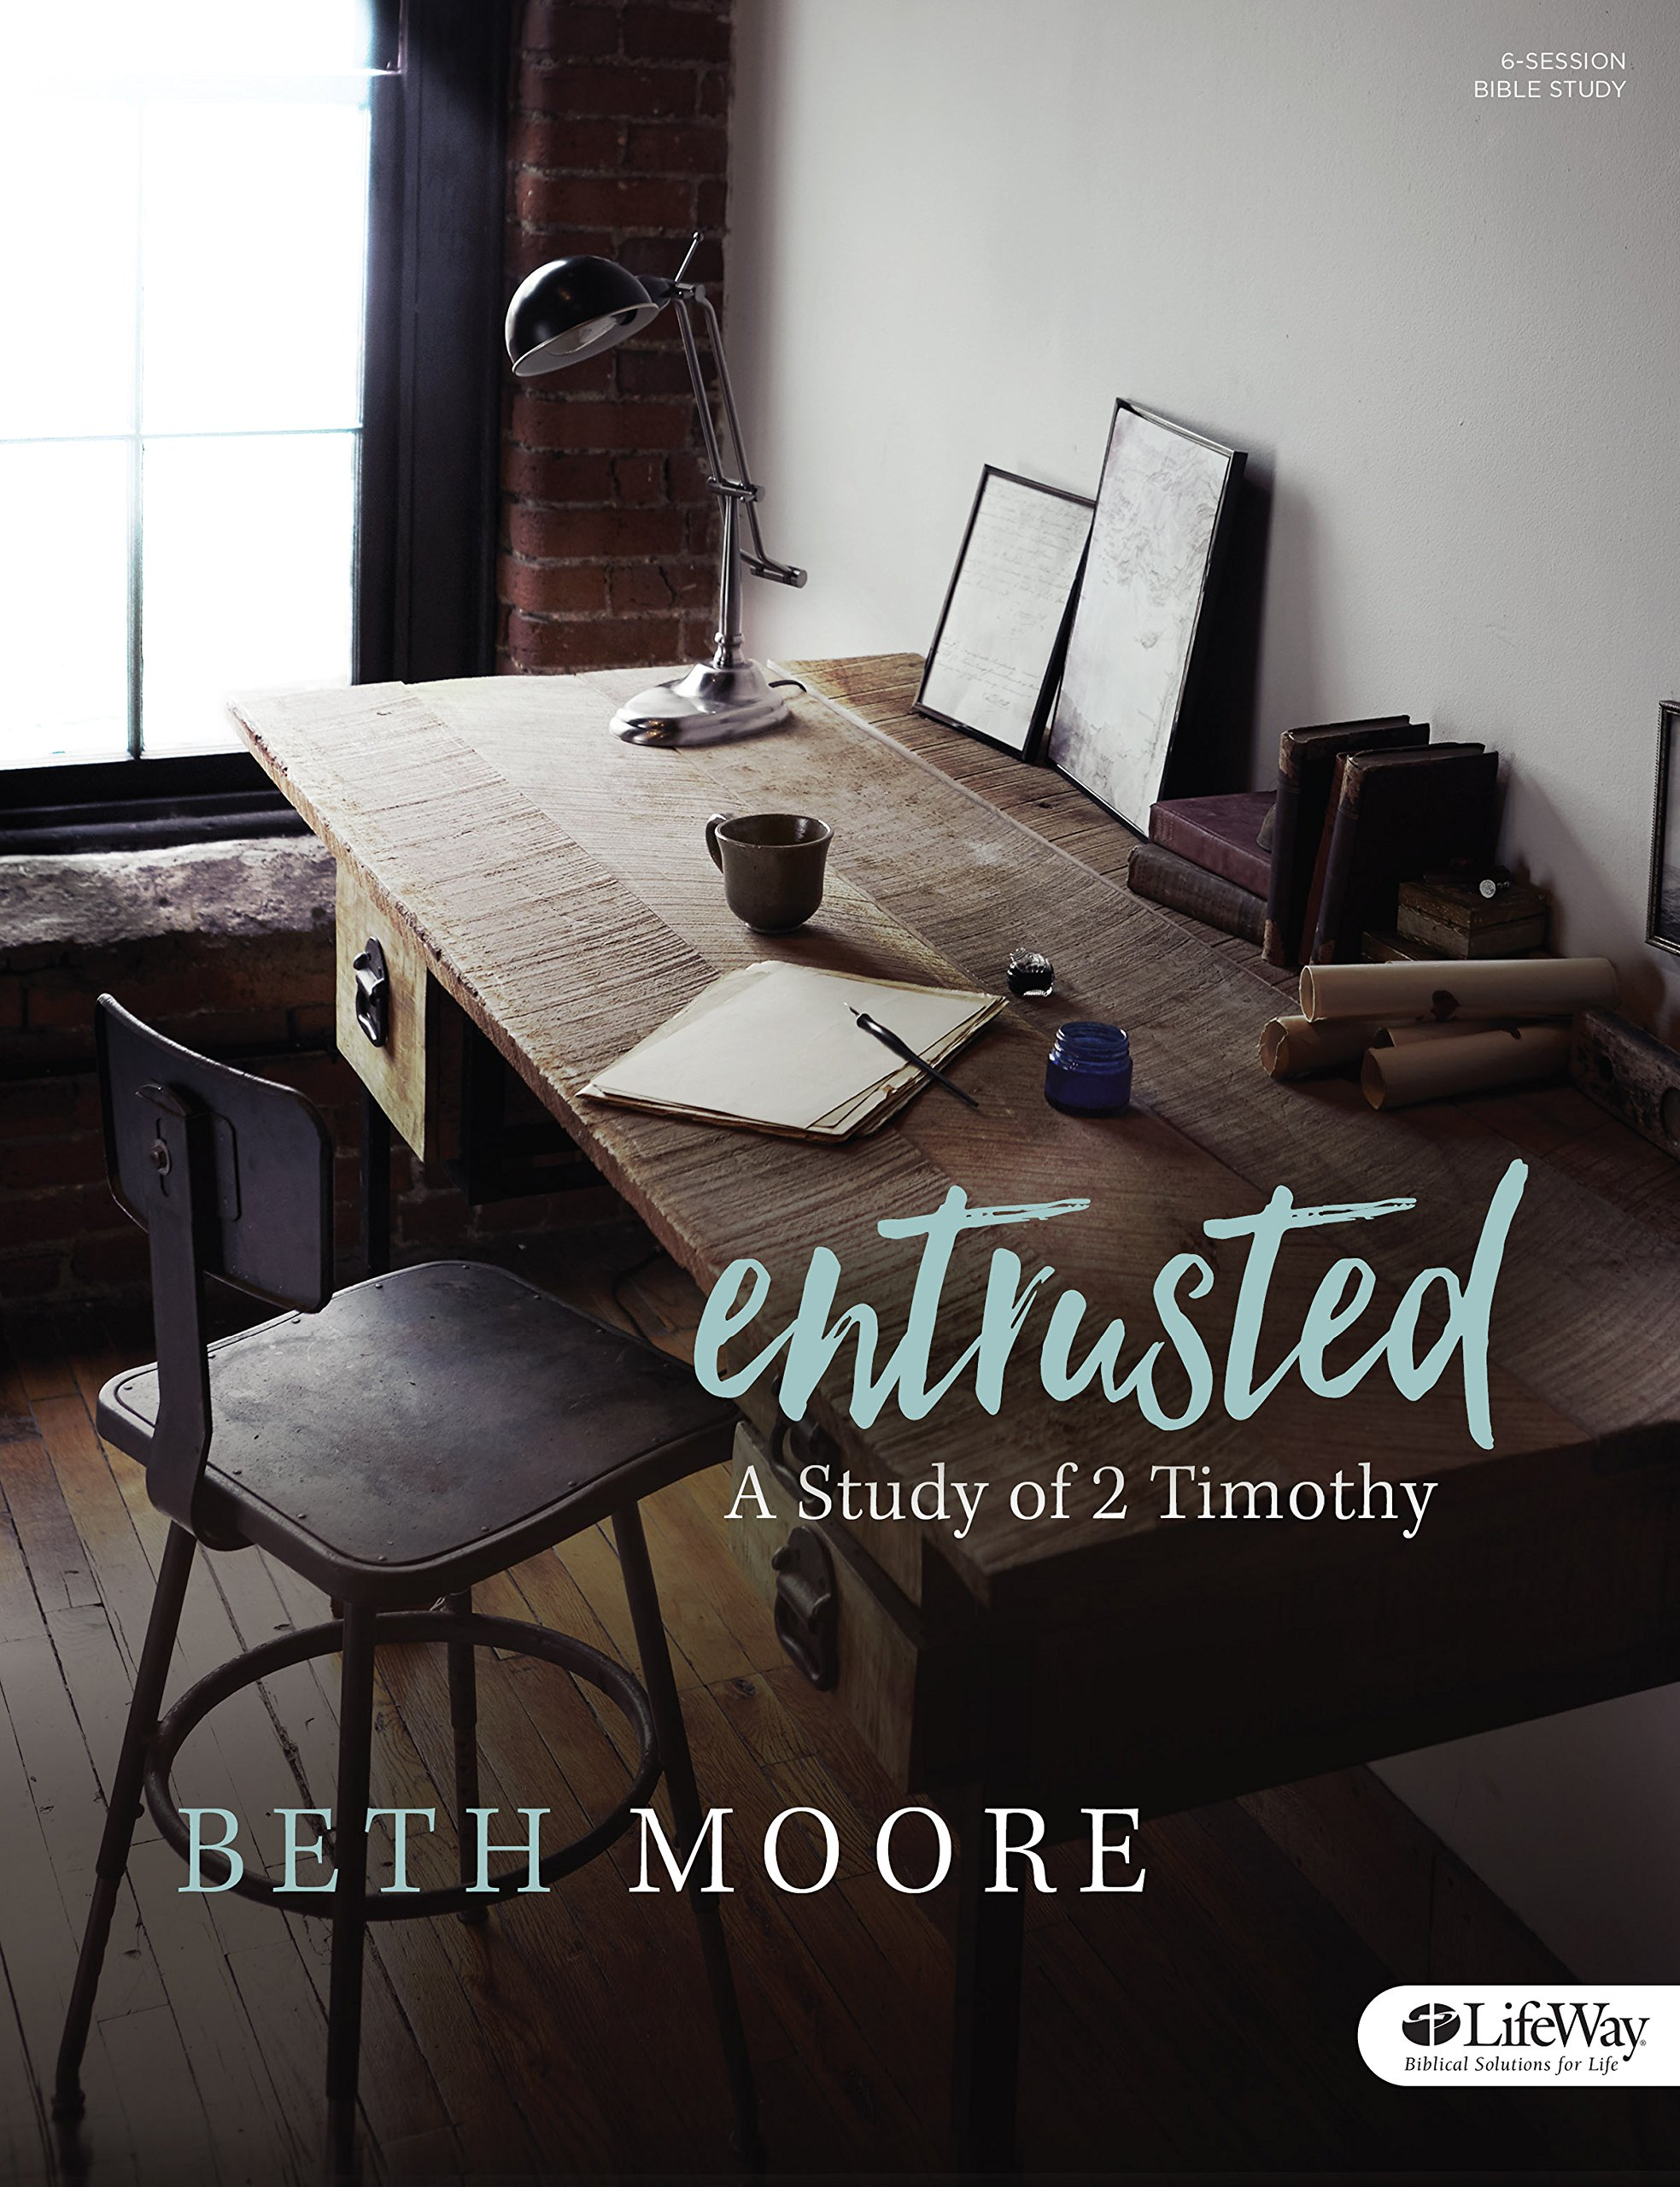 entrusted bible study book a study of 2 timothy beth moore